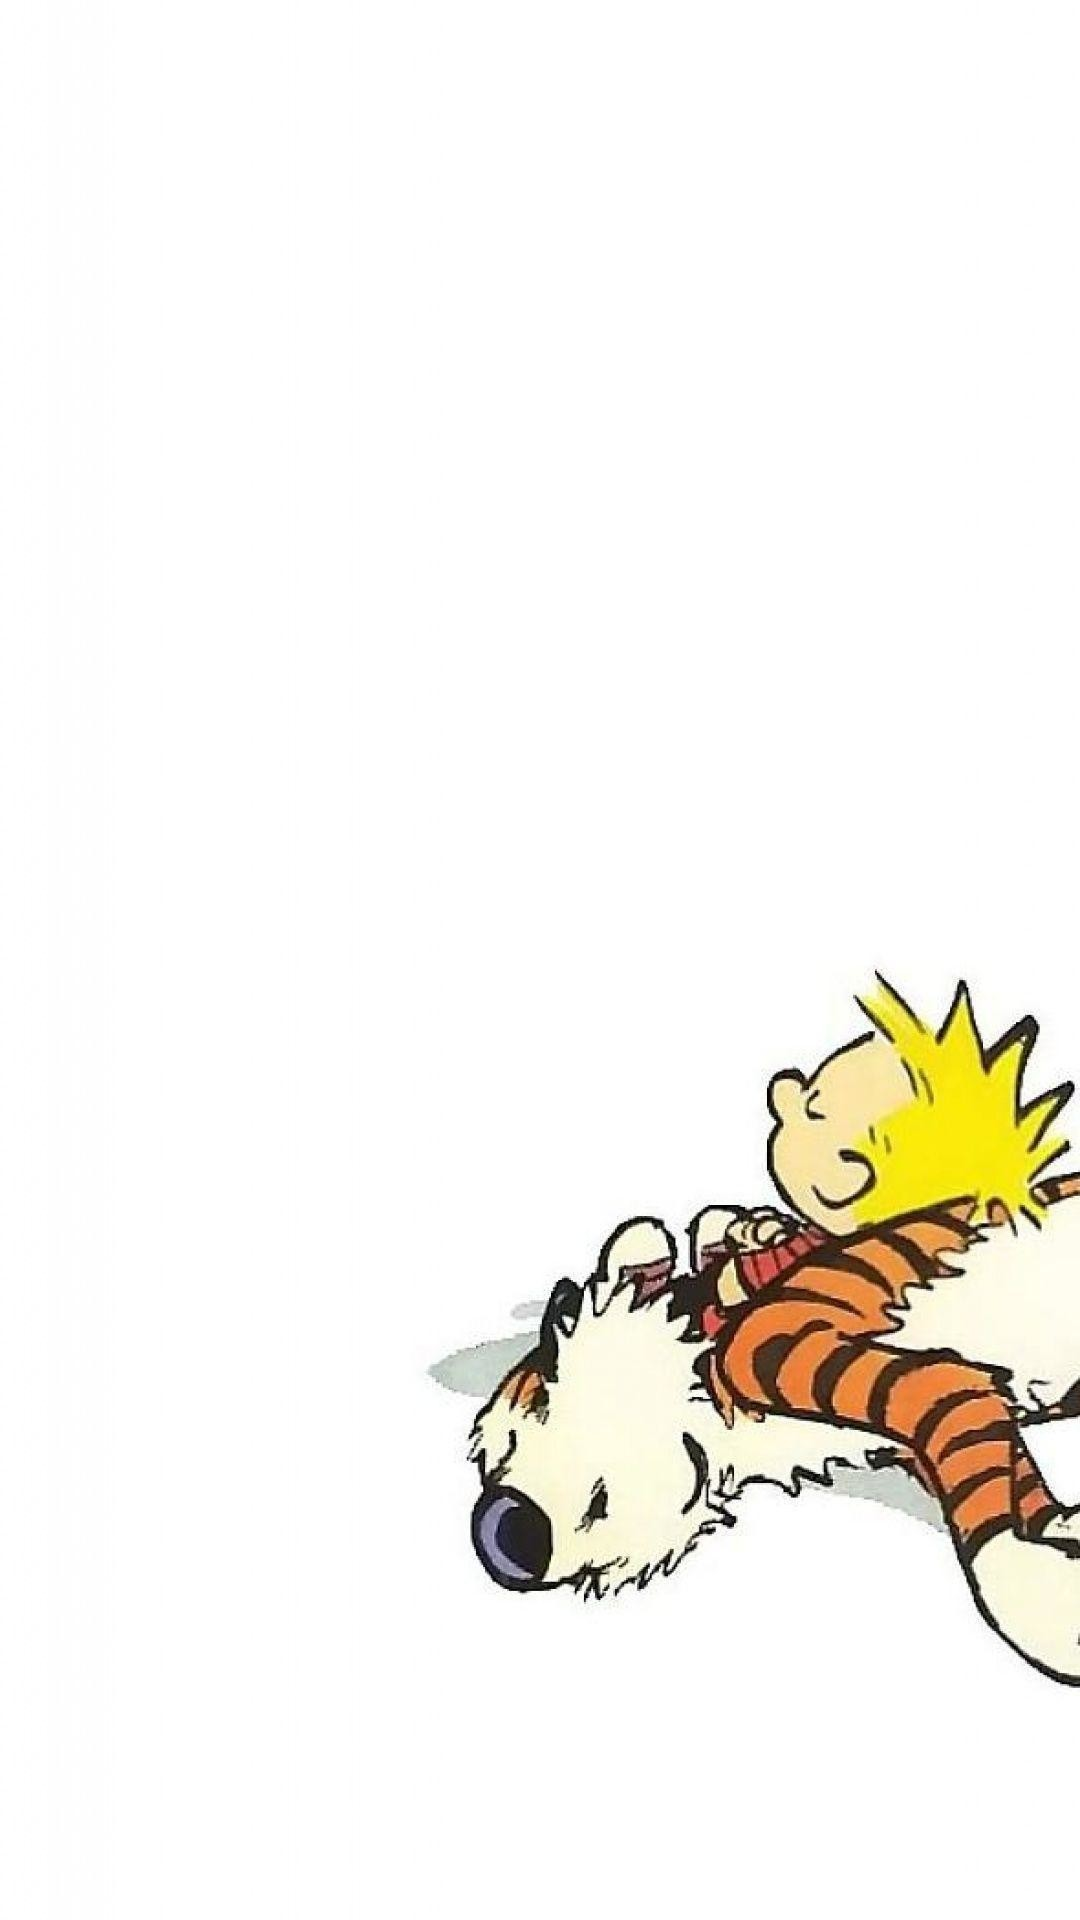 1080x1920 Calvin And Hobbes Wallpapers - Wallpaper Cave